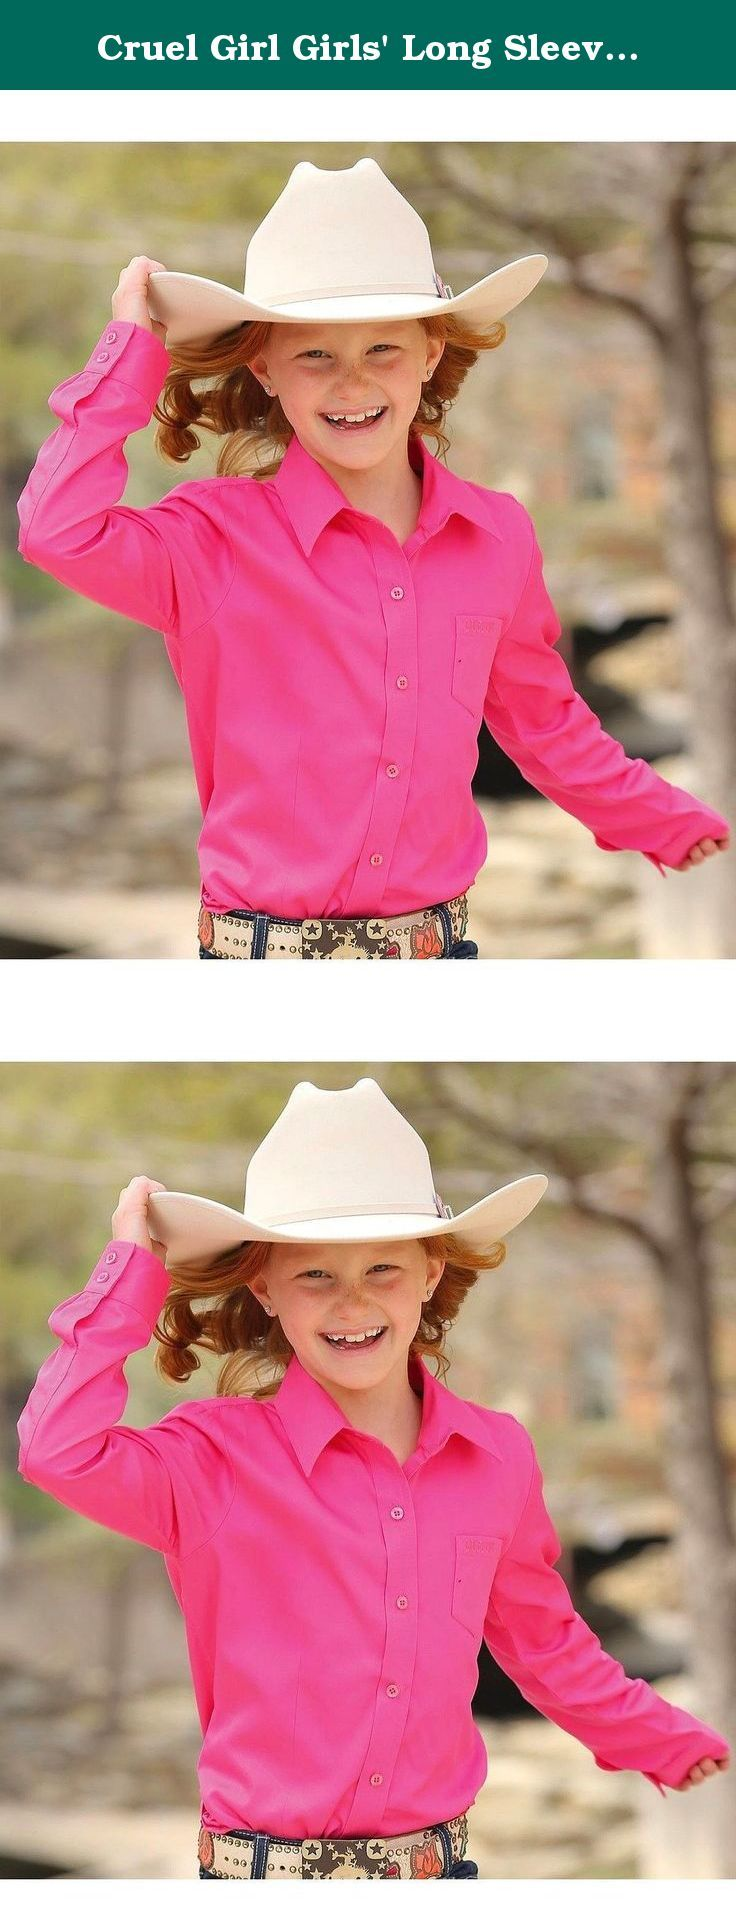 "Cruel Girl Girls' Long Sleeve Button Up Top Pink Large. A classic button-up shirt for your little cowgirl by Cruel Girl This solid pink shirt features embroidered ""Cruel Girl"" text at the left chest pocket. Cotton twill material. Imported."